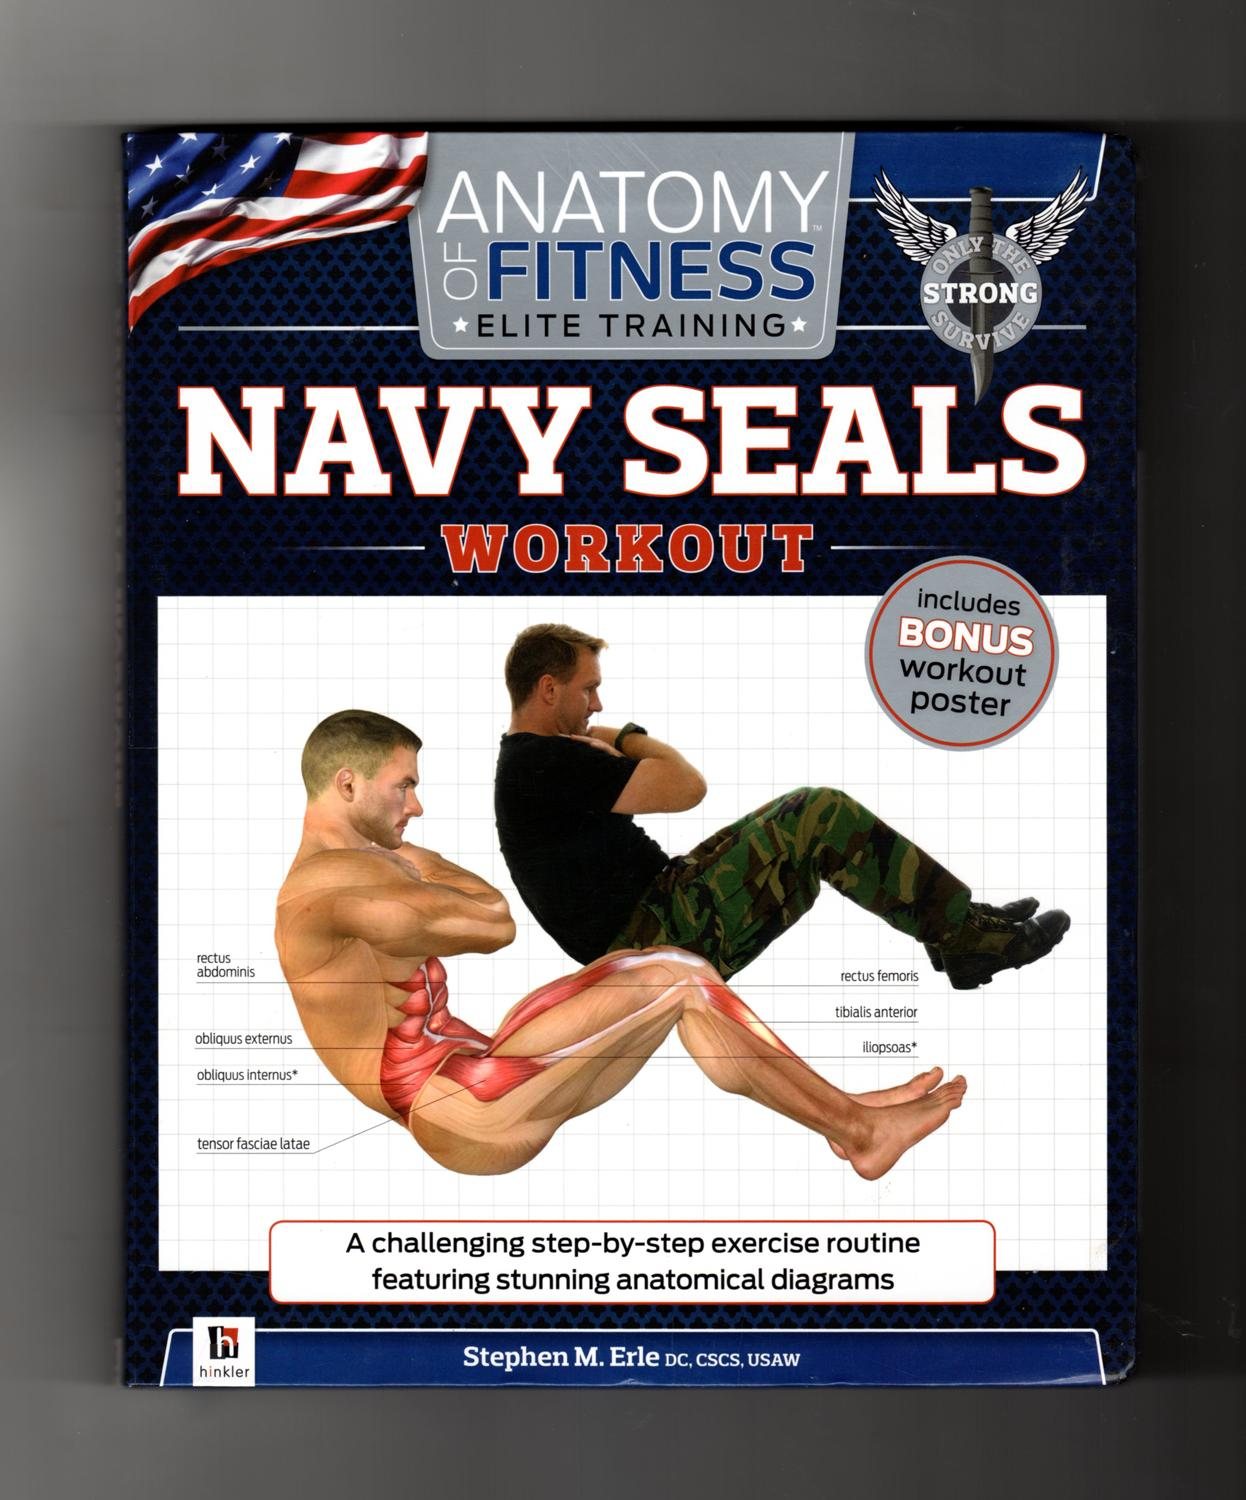 Anatomy Of Fitness Elite Training Navy Seals Workout With Wall